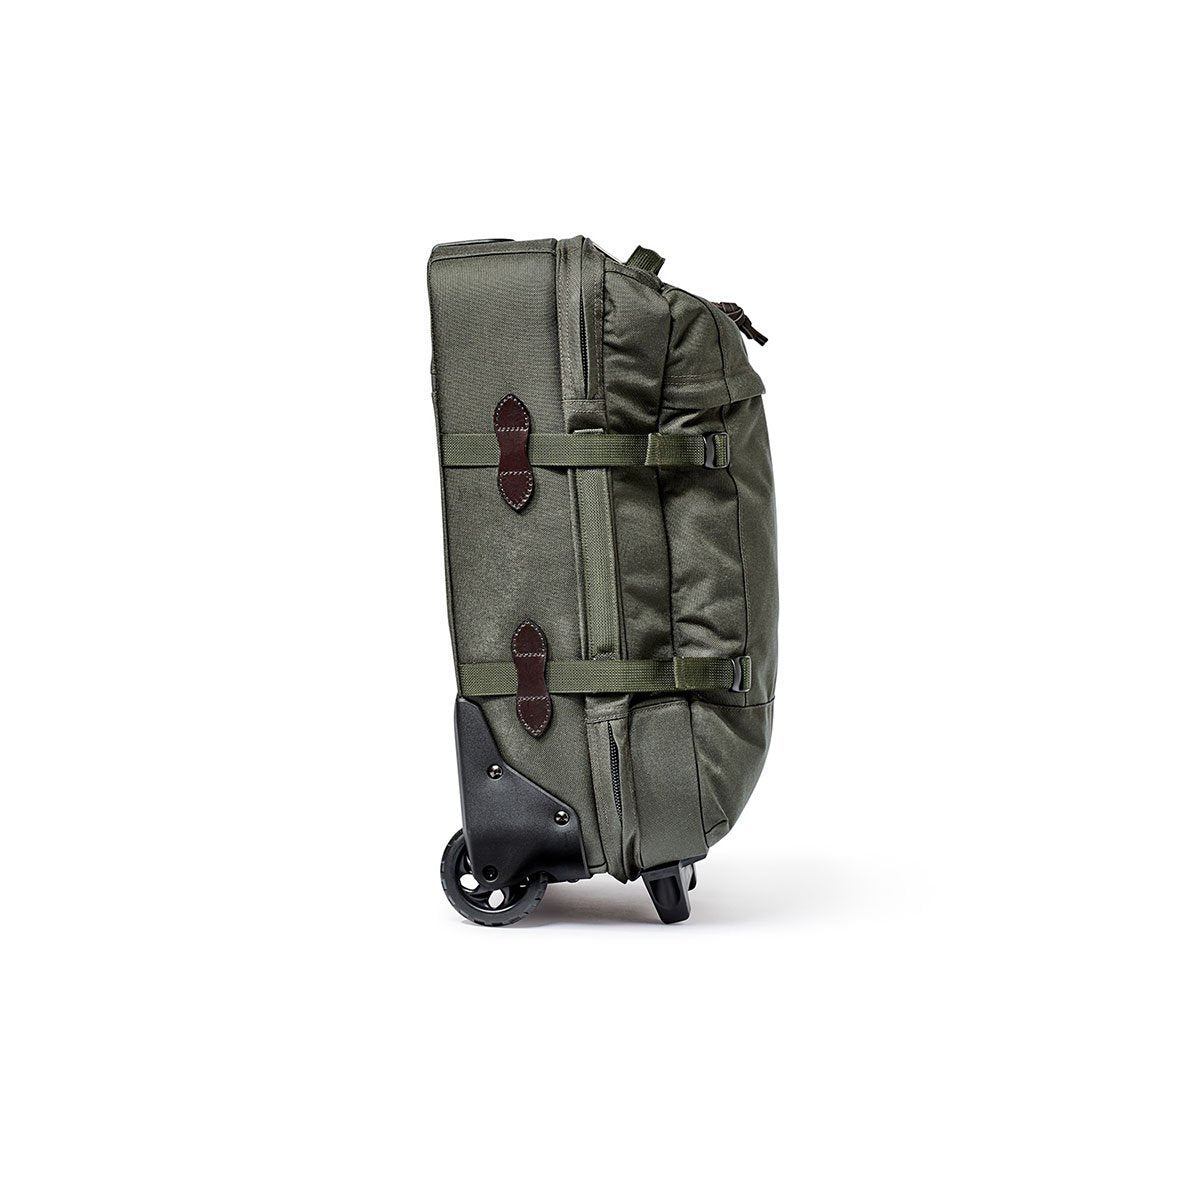 Filson Dryden 2-wheels carry-on bag Otter green